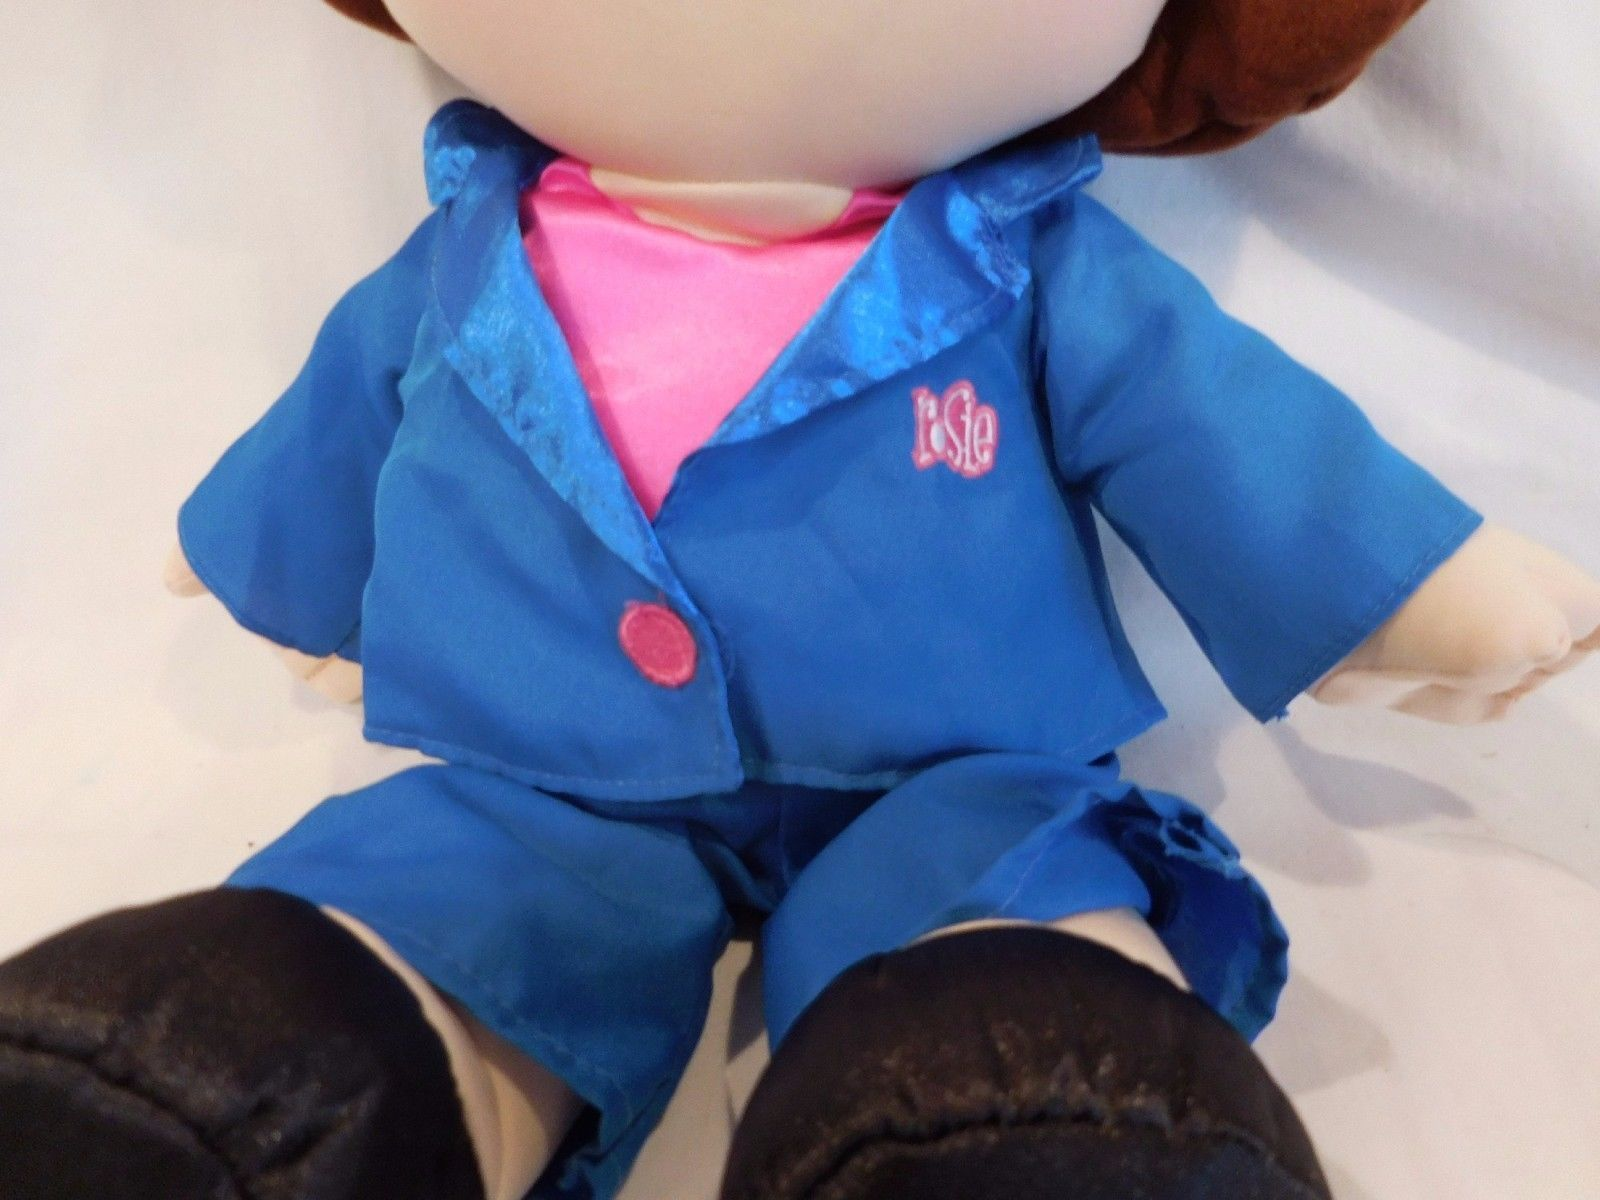 Rosie O Donnell O Doll Talking Plush Soft Toy Tyco 1997 Comedian Actress TV Show image 3